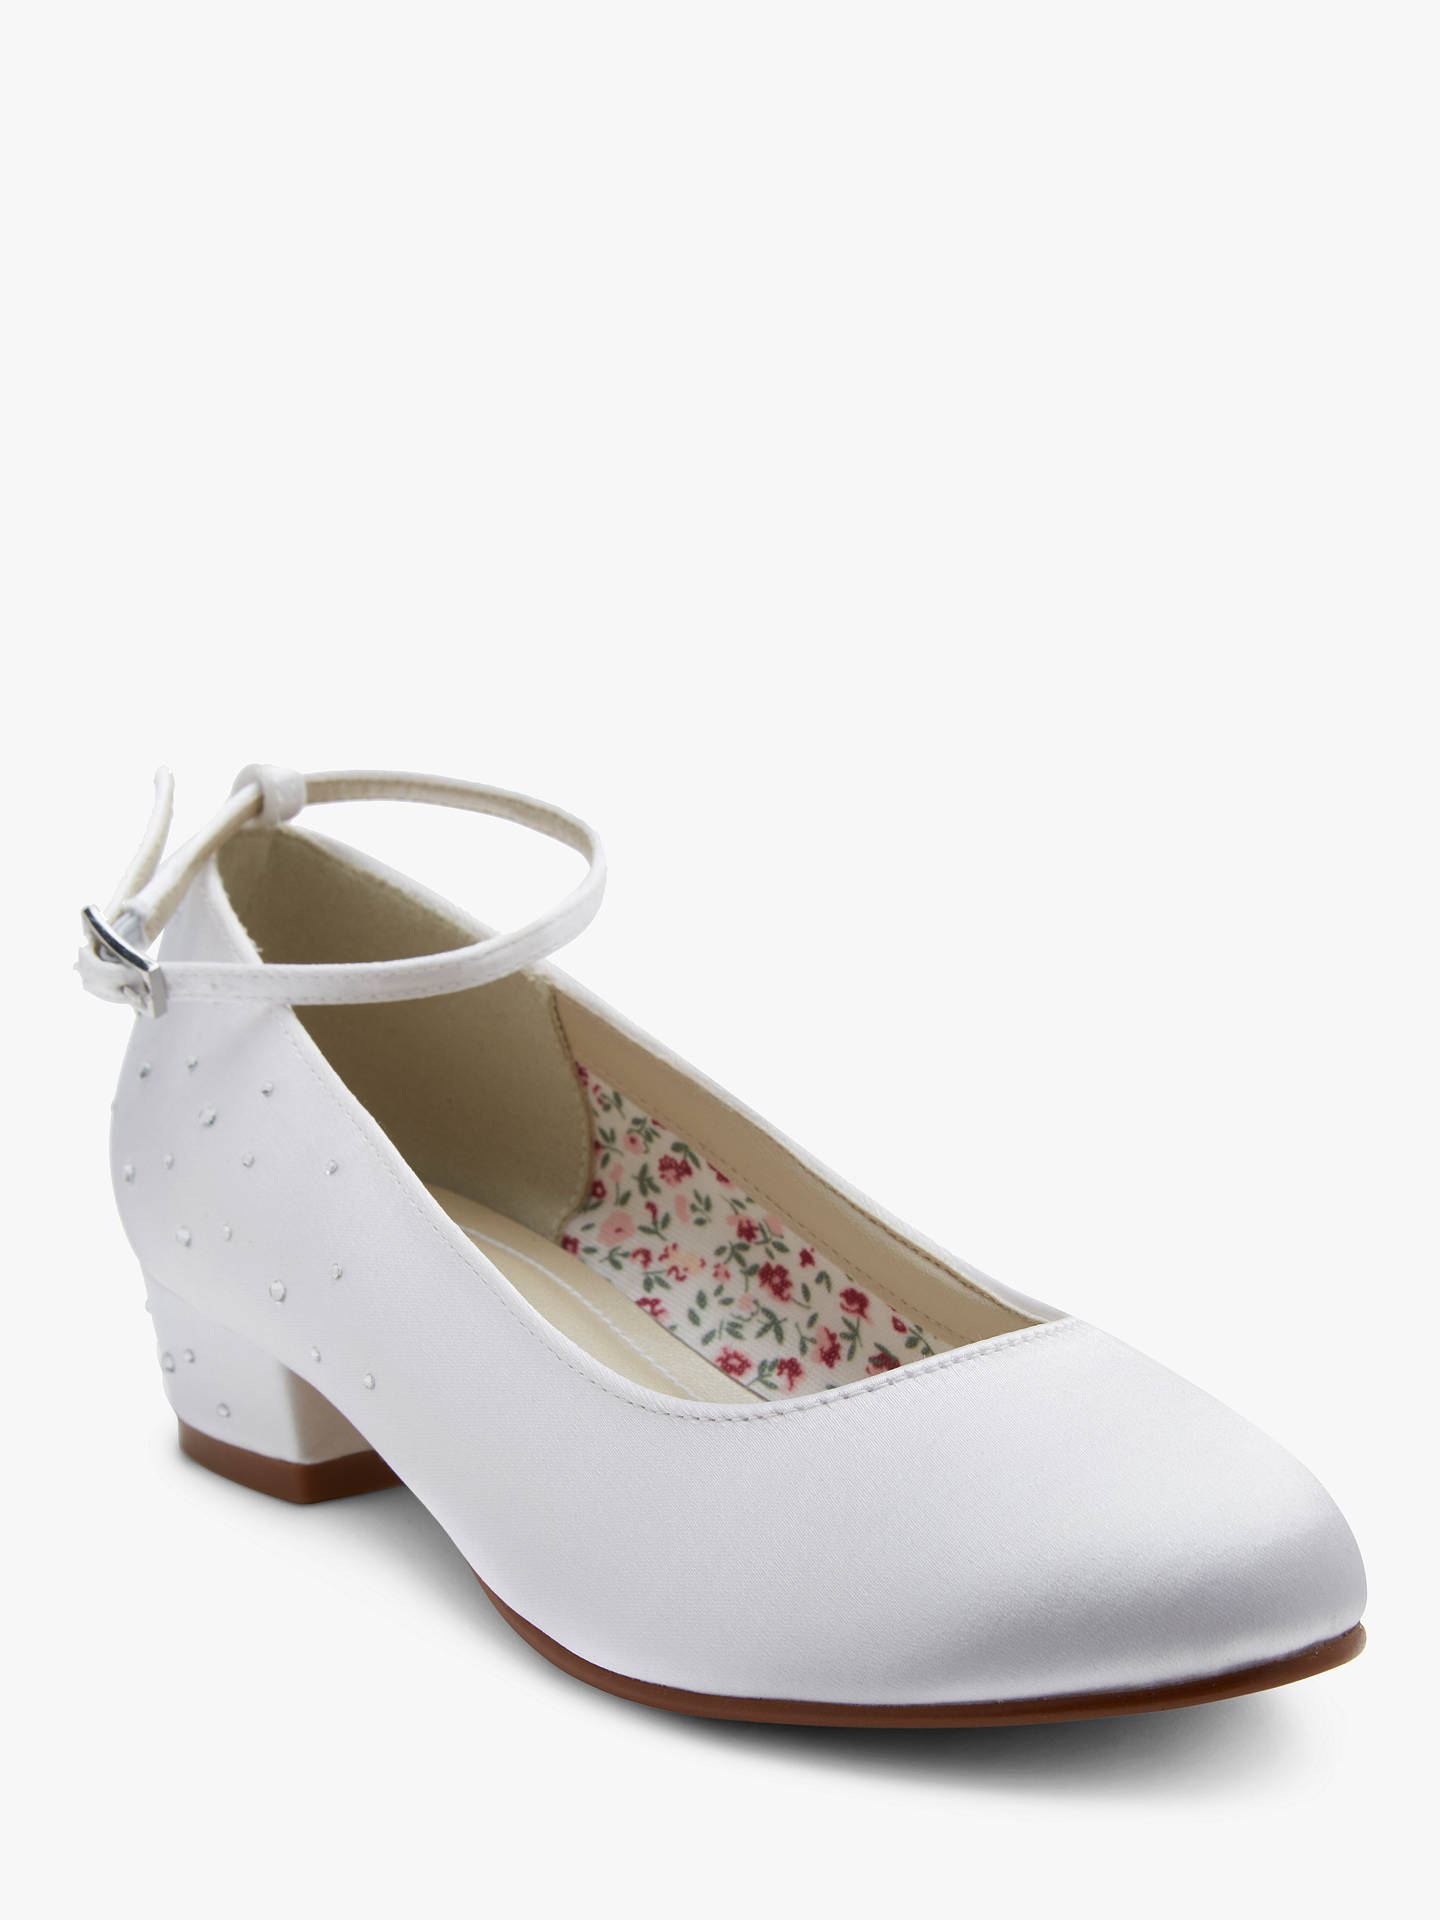 BuyRainbow Club Maple Bridesmaids' Shoes, White, 12 Jnr Online at johnlewis.com